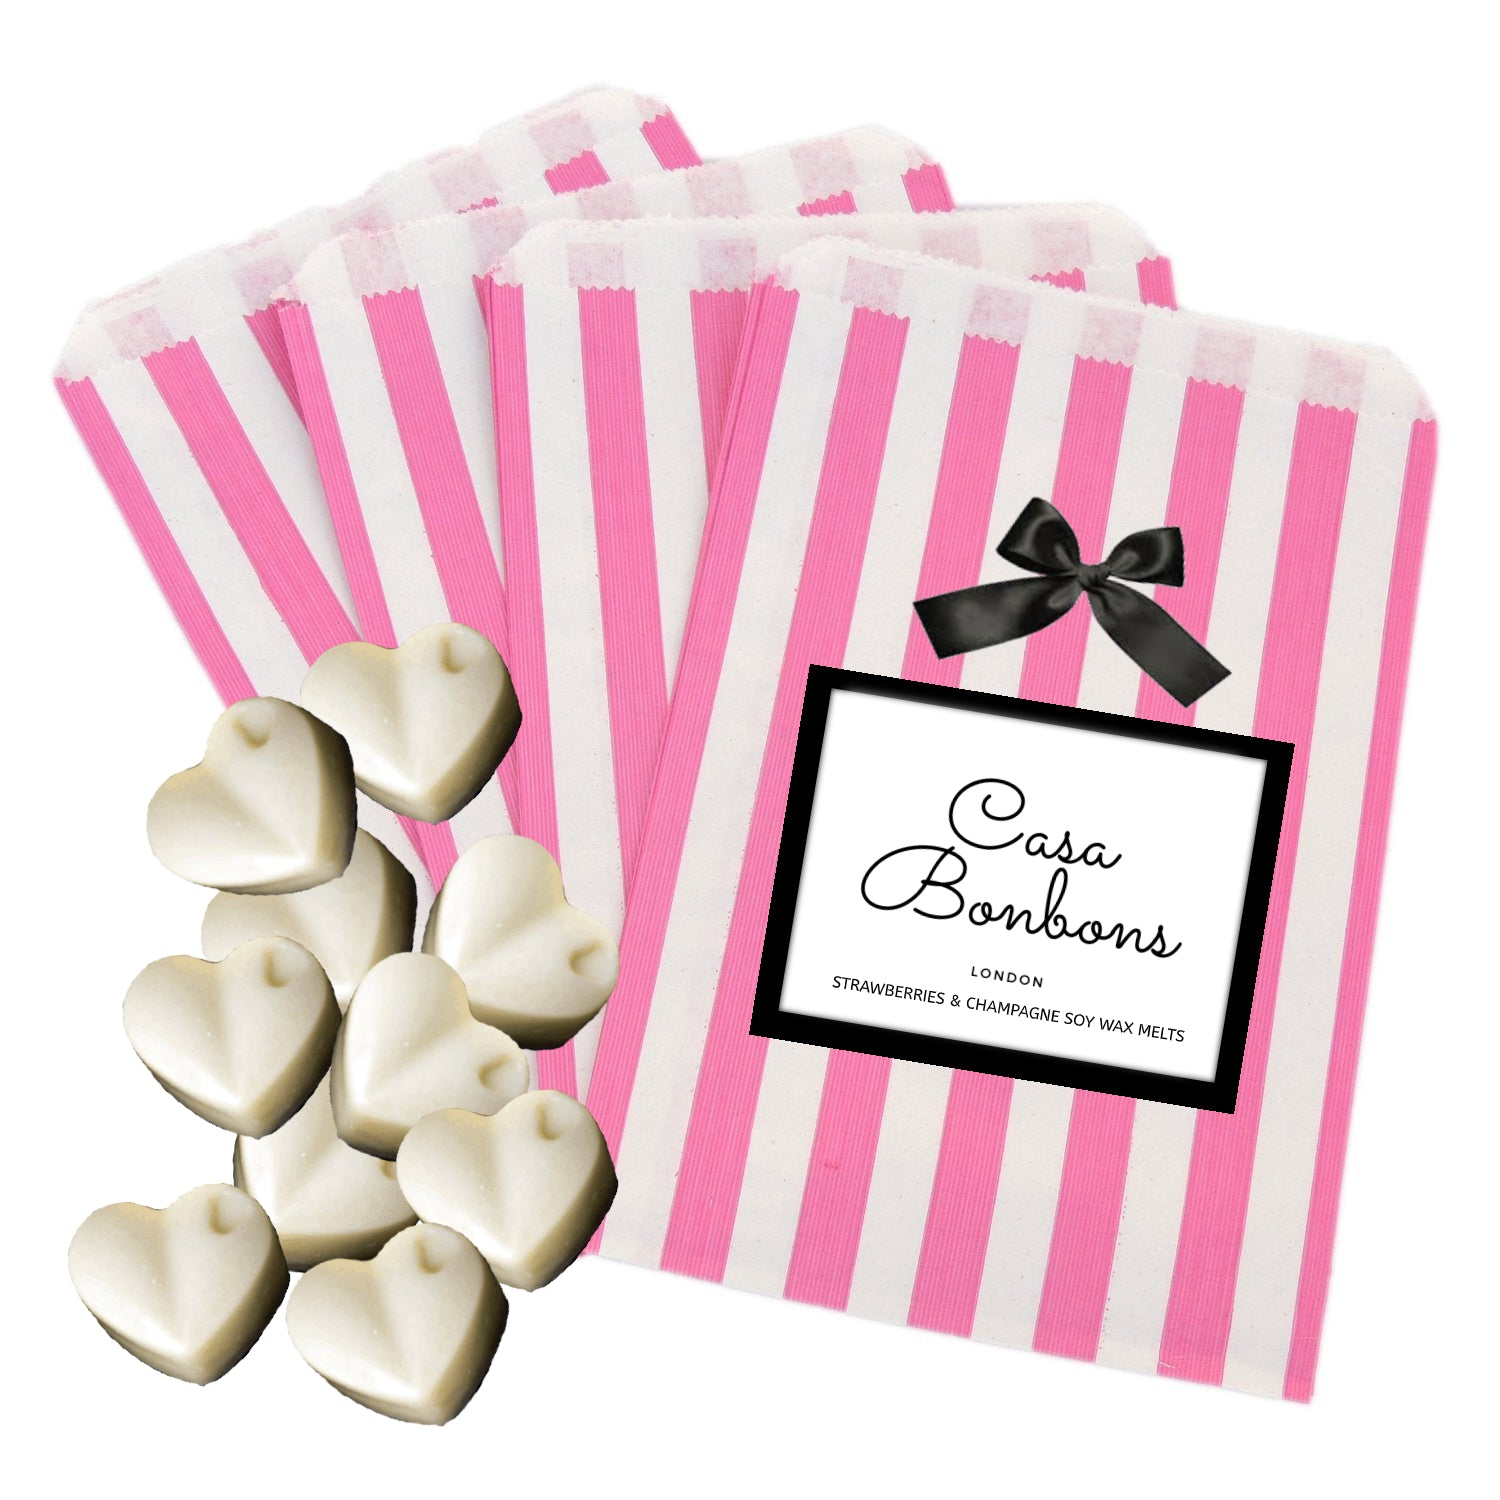 Strawberry & Champagne gentle scented Soy Wax Melts (10 hearts), PRE-ORDER delivery around 10th of December - natoorio